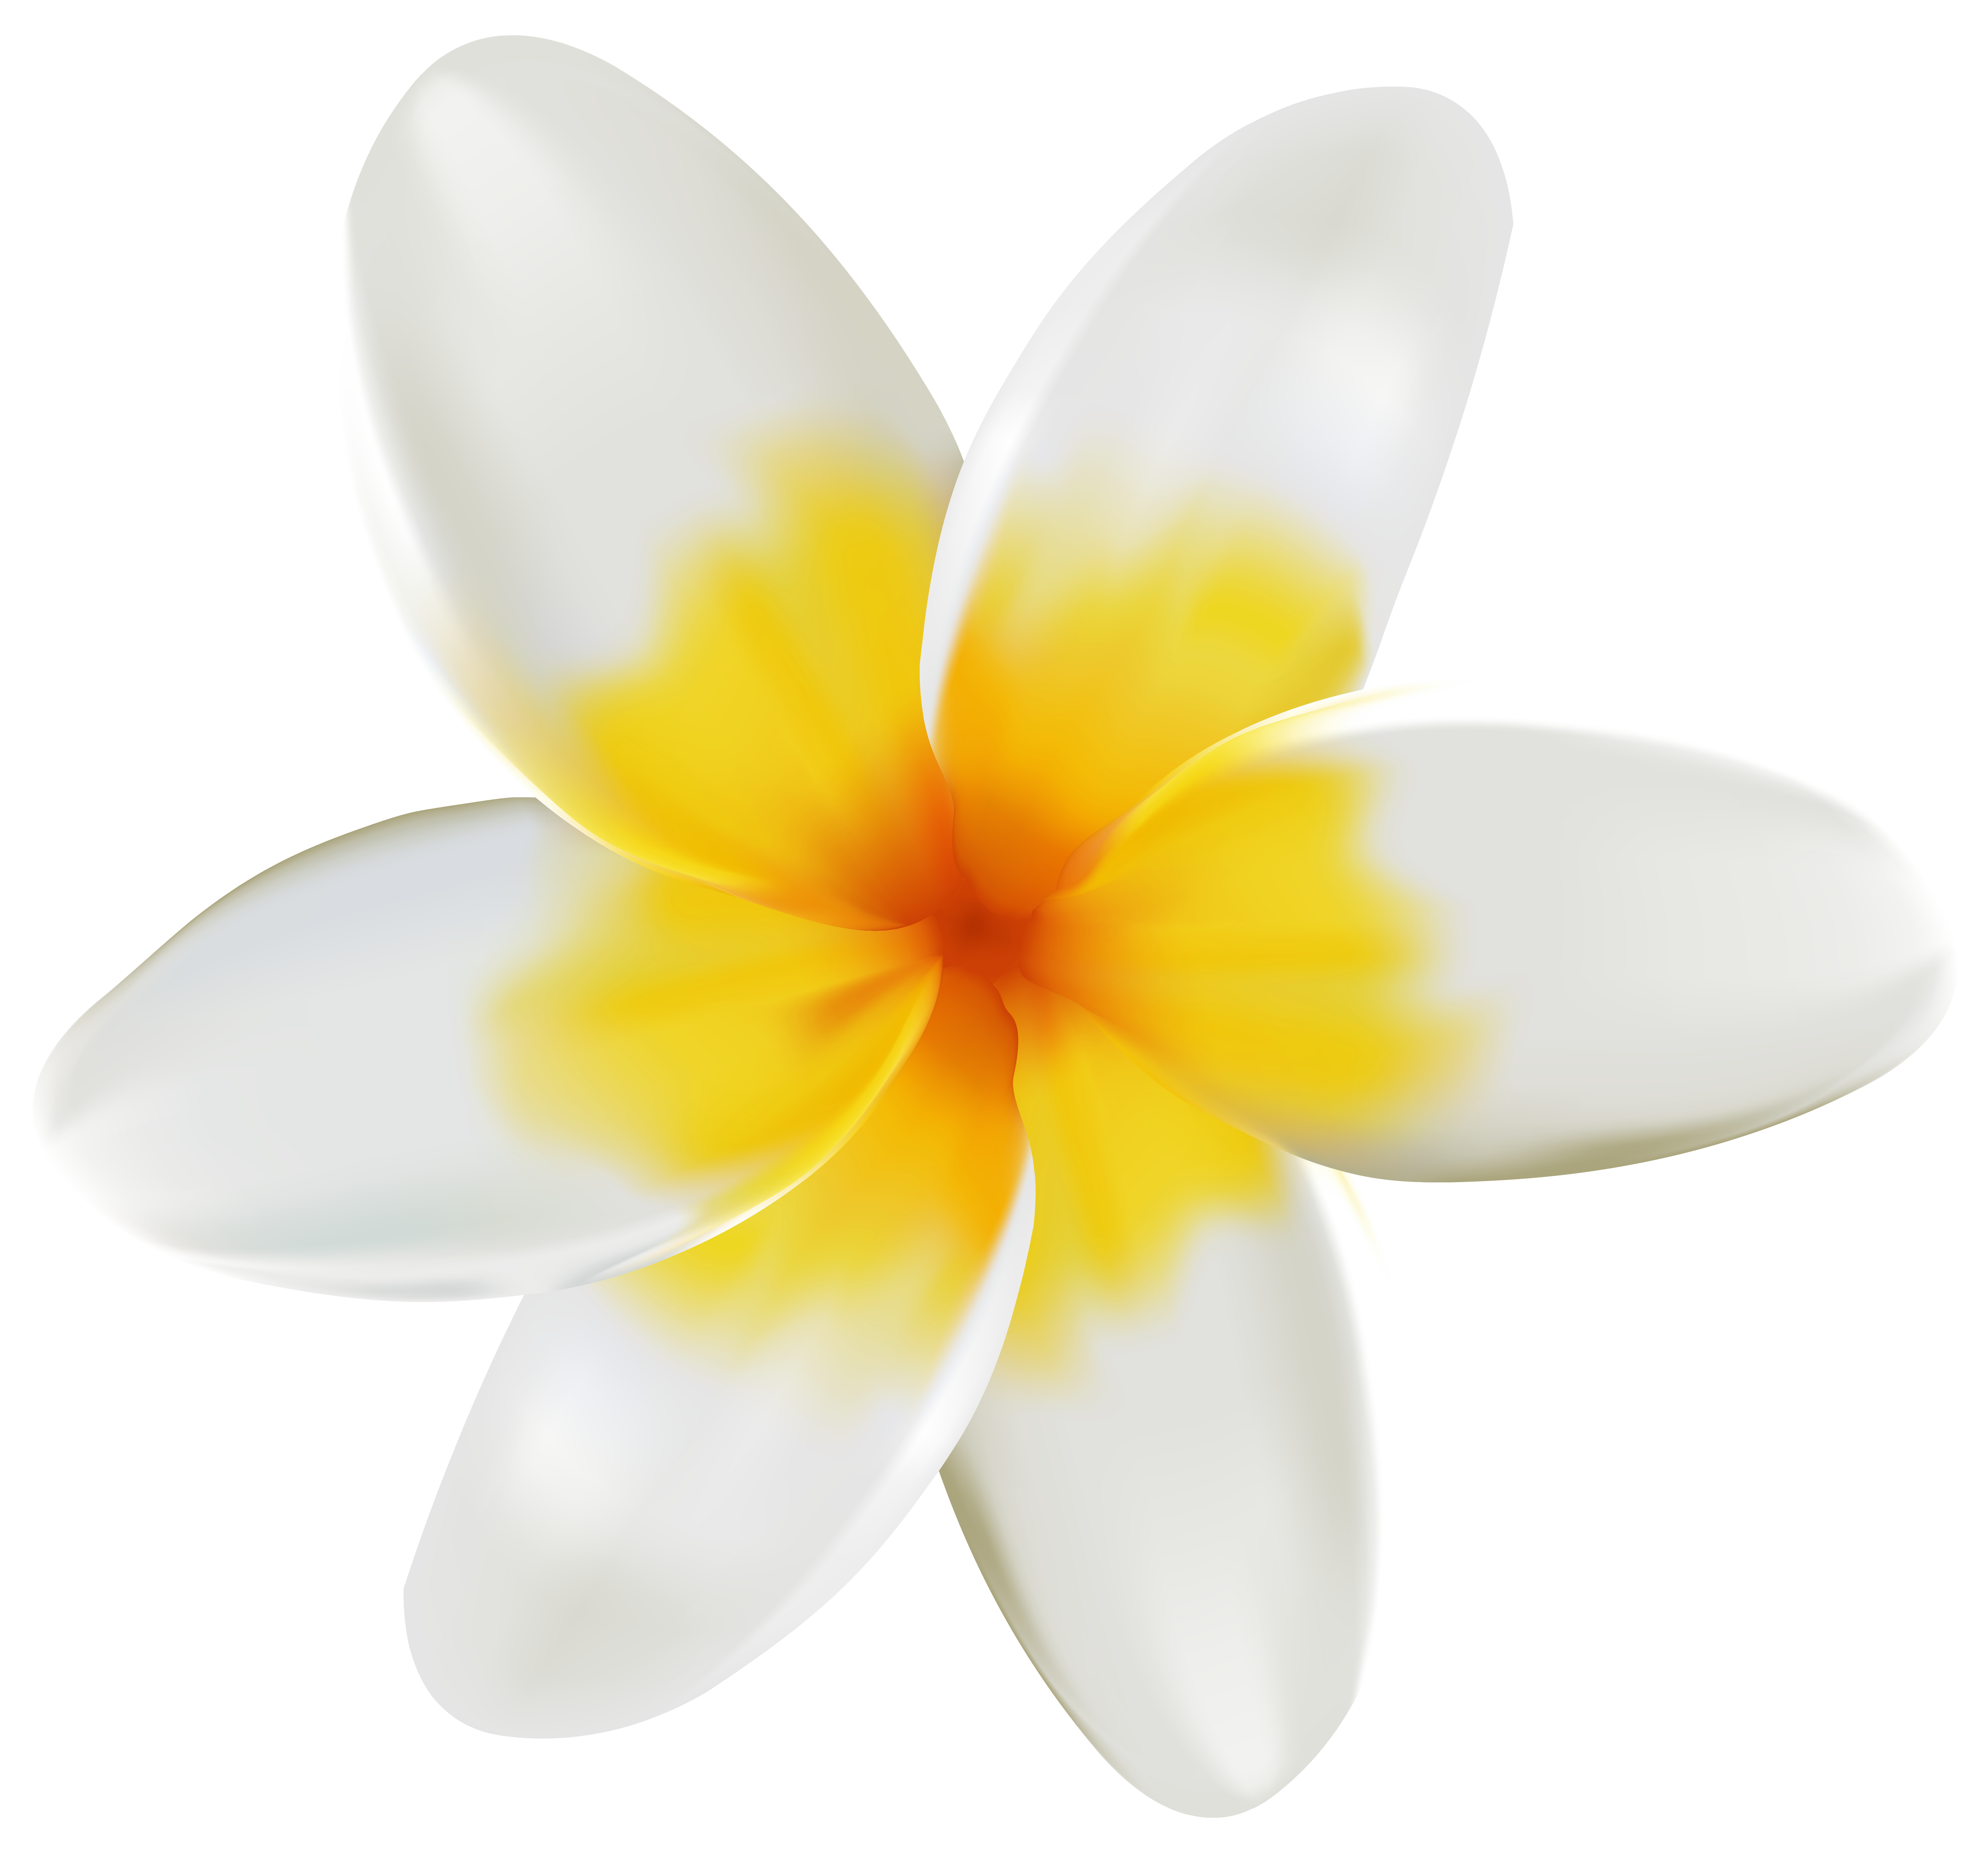 Plumeria flower png. Clipart image gallery yopriceville